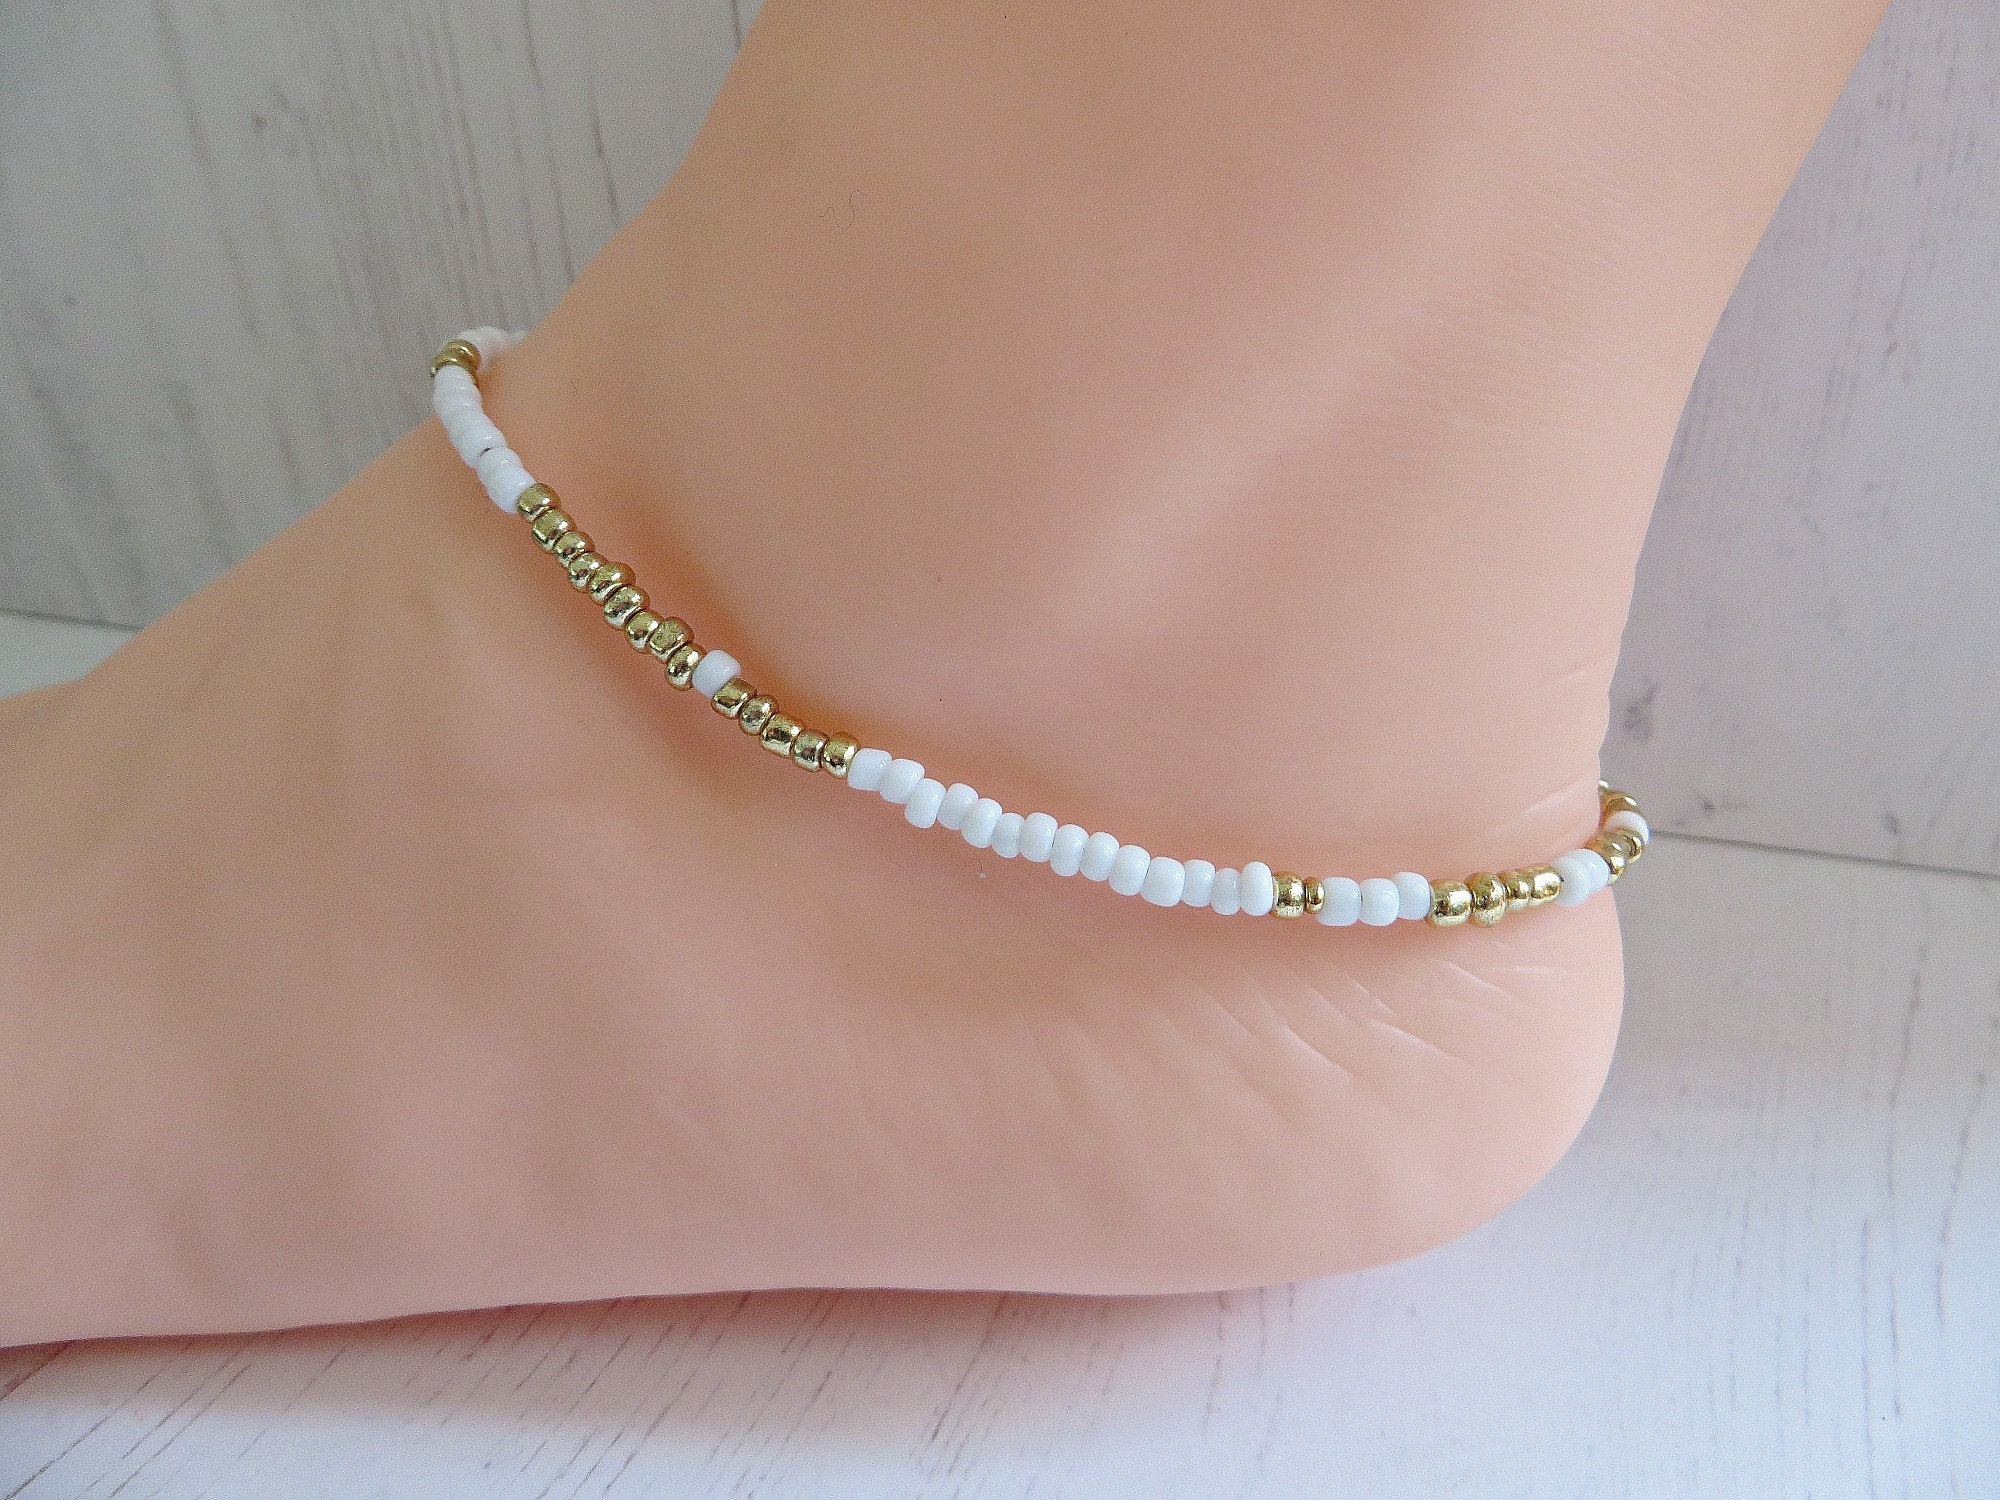 free chain nickel cable fine sterling italy girls flat anklets bracelet silver jewelry anklet c